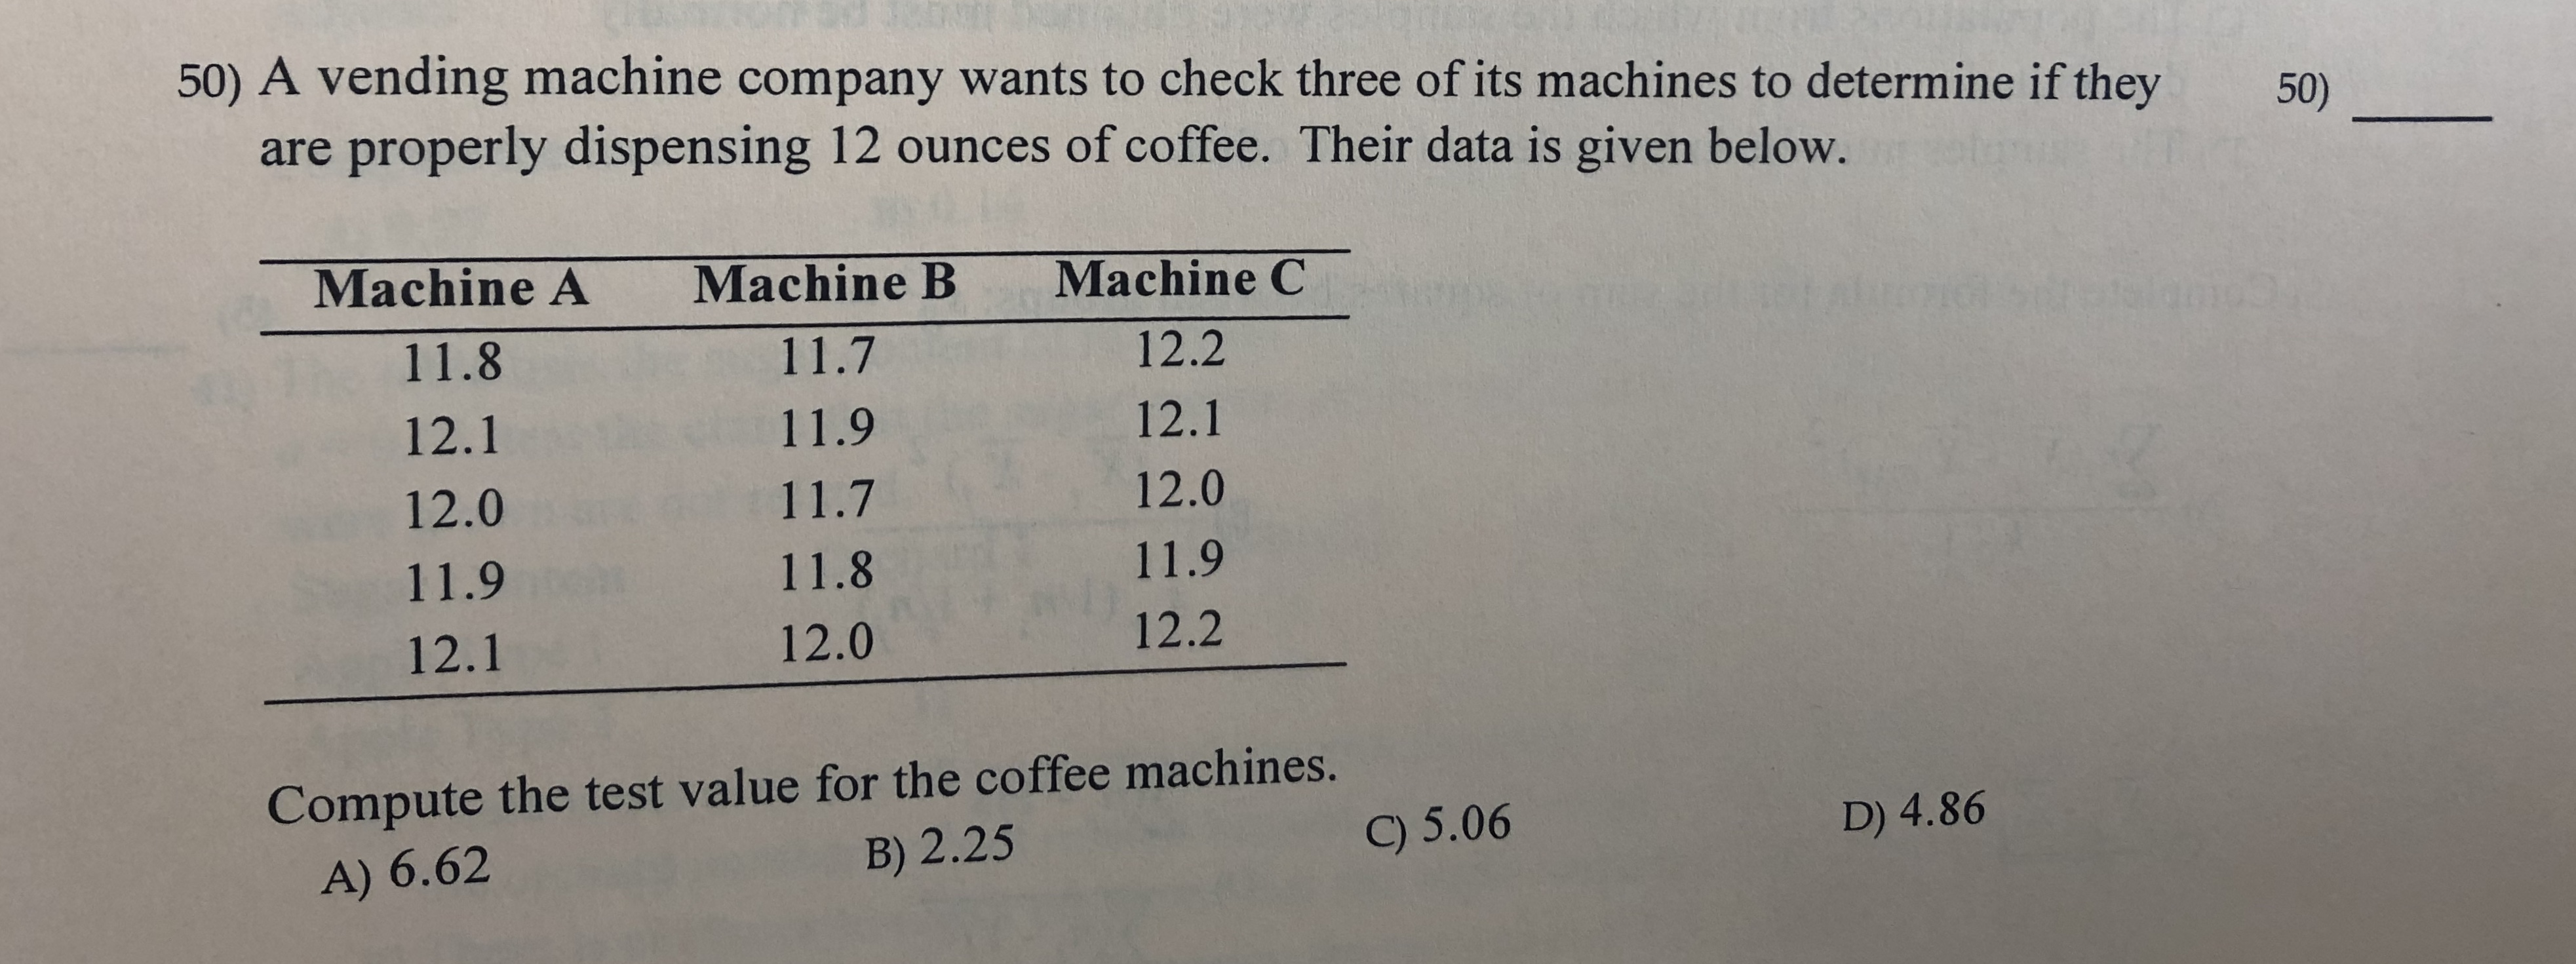 50) A vending machine company wants to check three of its machines to determine if they 50) are properly dispensing 12 ounces of coffee. Their data is given below. Machine A Machine C Machine B 11.8 11.7 12.2 12.1 11.9 12.1 12.0 12.0 11.7 11.9 11.8 11.9 12.2 12.0 12.1 Compute the test value for the coffee machines. B) 2.25 9 5.06 D) 4.86 A) 6.62